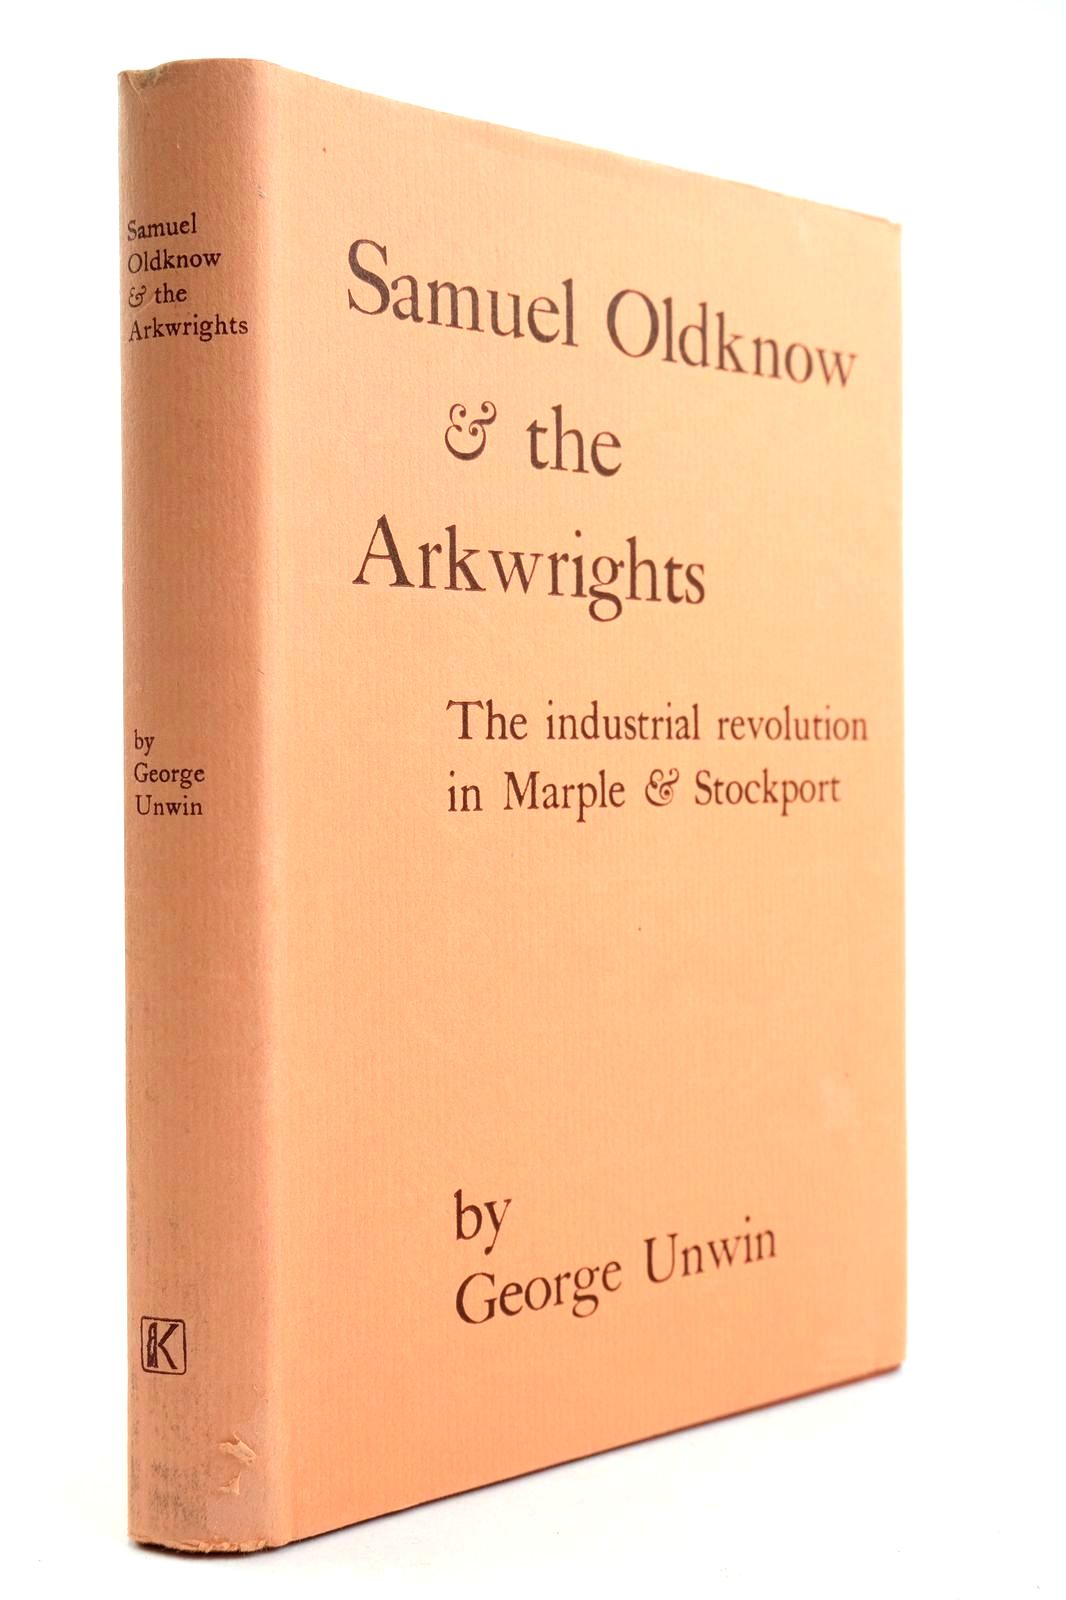 Photo of SAMUEL OLDKNOW AND THE ARKWRIGHTS written by Unwin, George Hulme, Arthur Taylor, George Chaloner, W.H. published by Augustus M. Kelley (STOCK CODE: 2132571)  for sale by Stella & Rose's Books